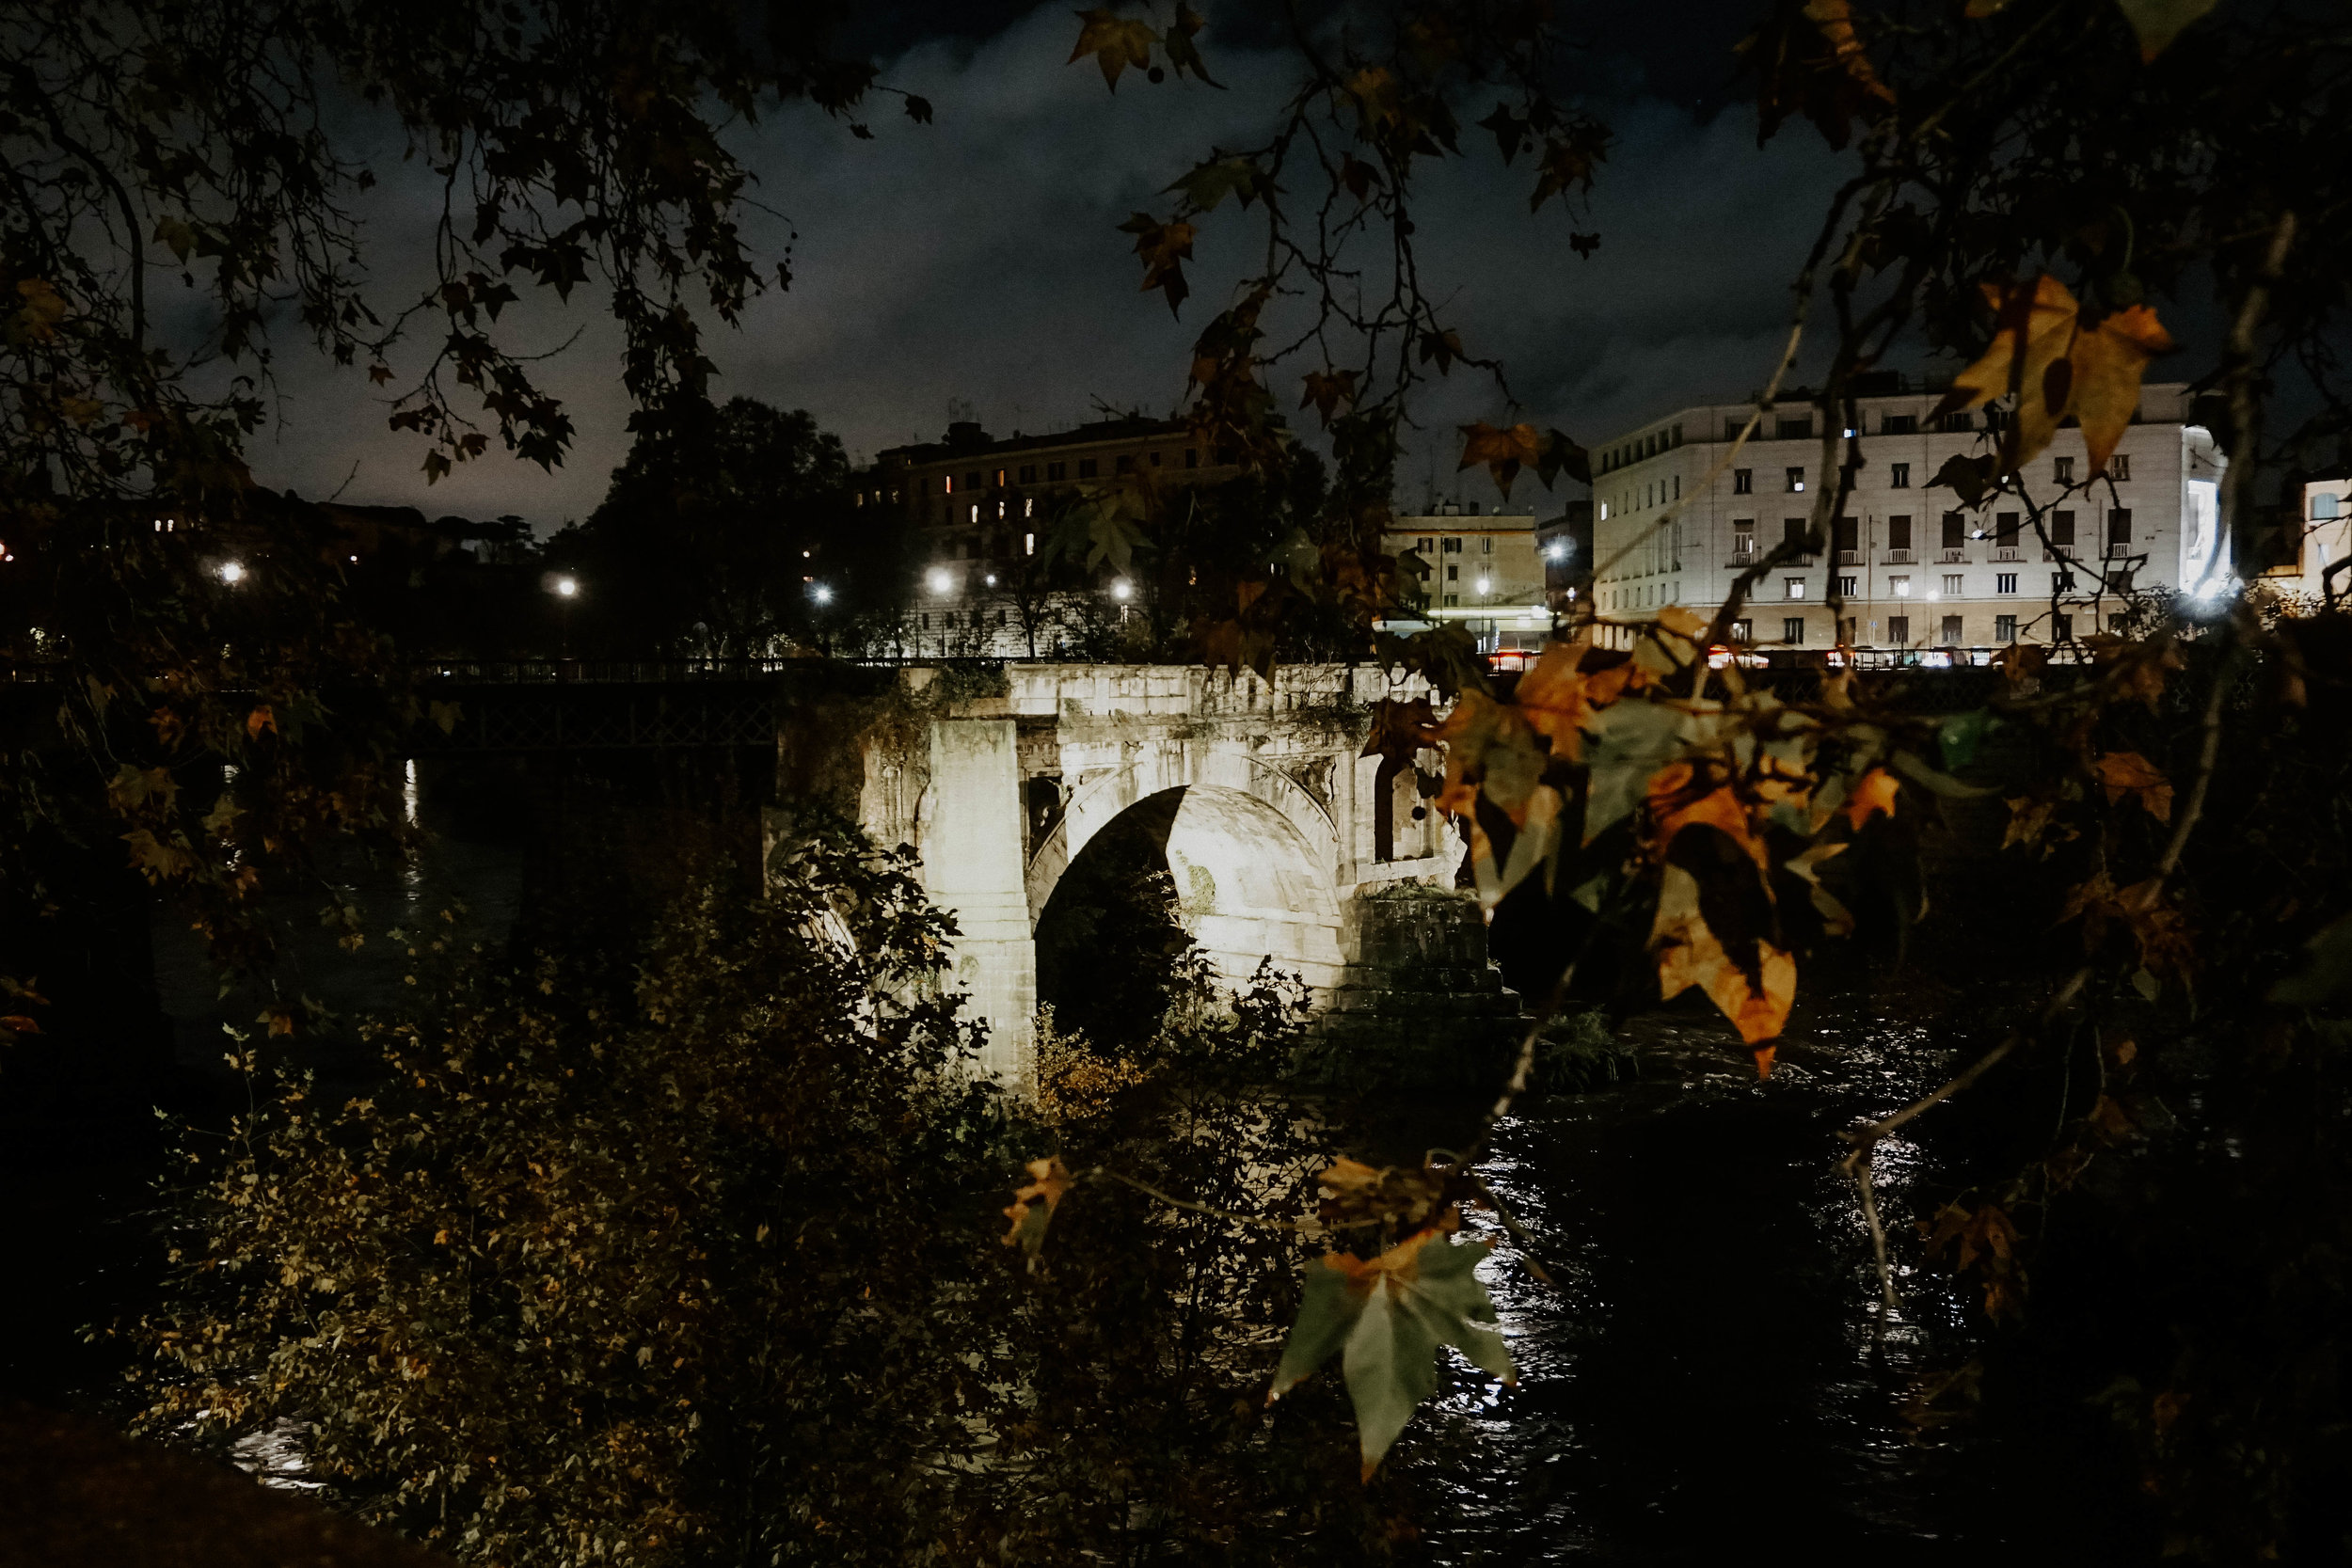 Tiber River on one of our many night walks